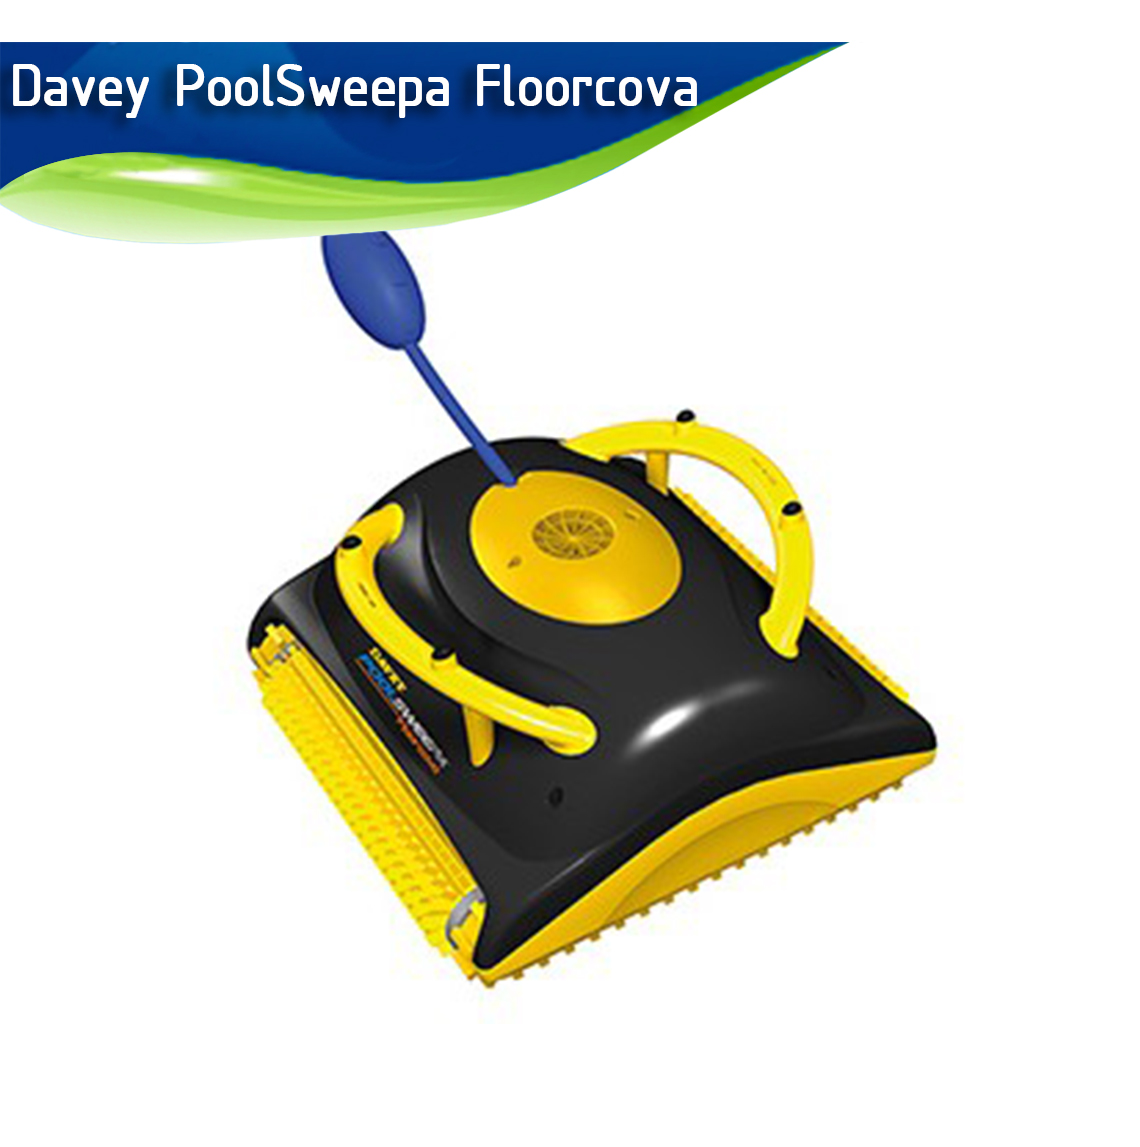 Davey PoolSweepa Floorcova REVIEW